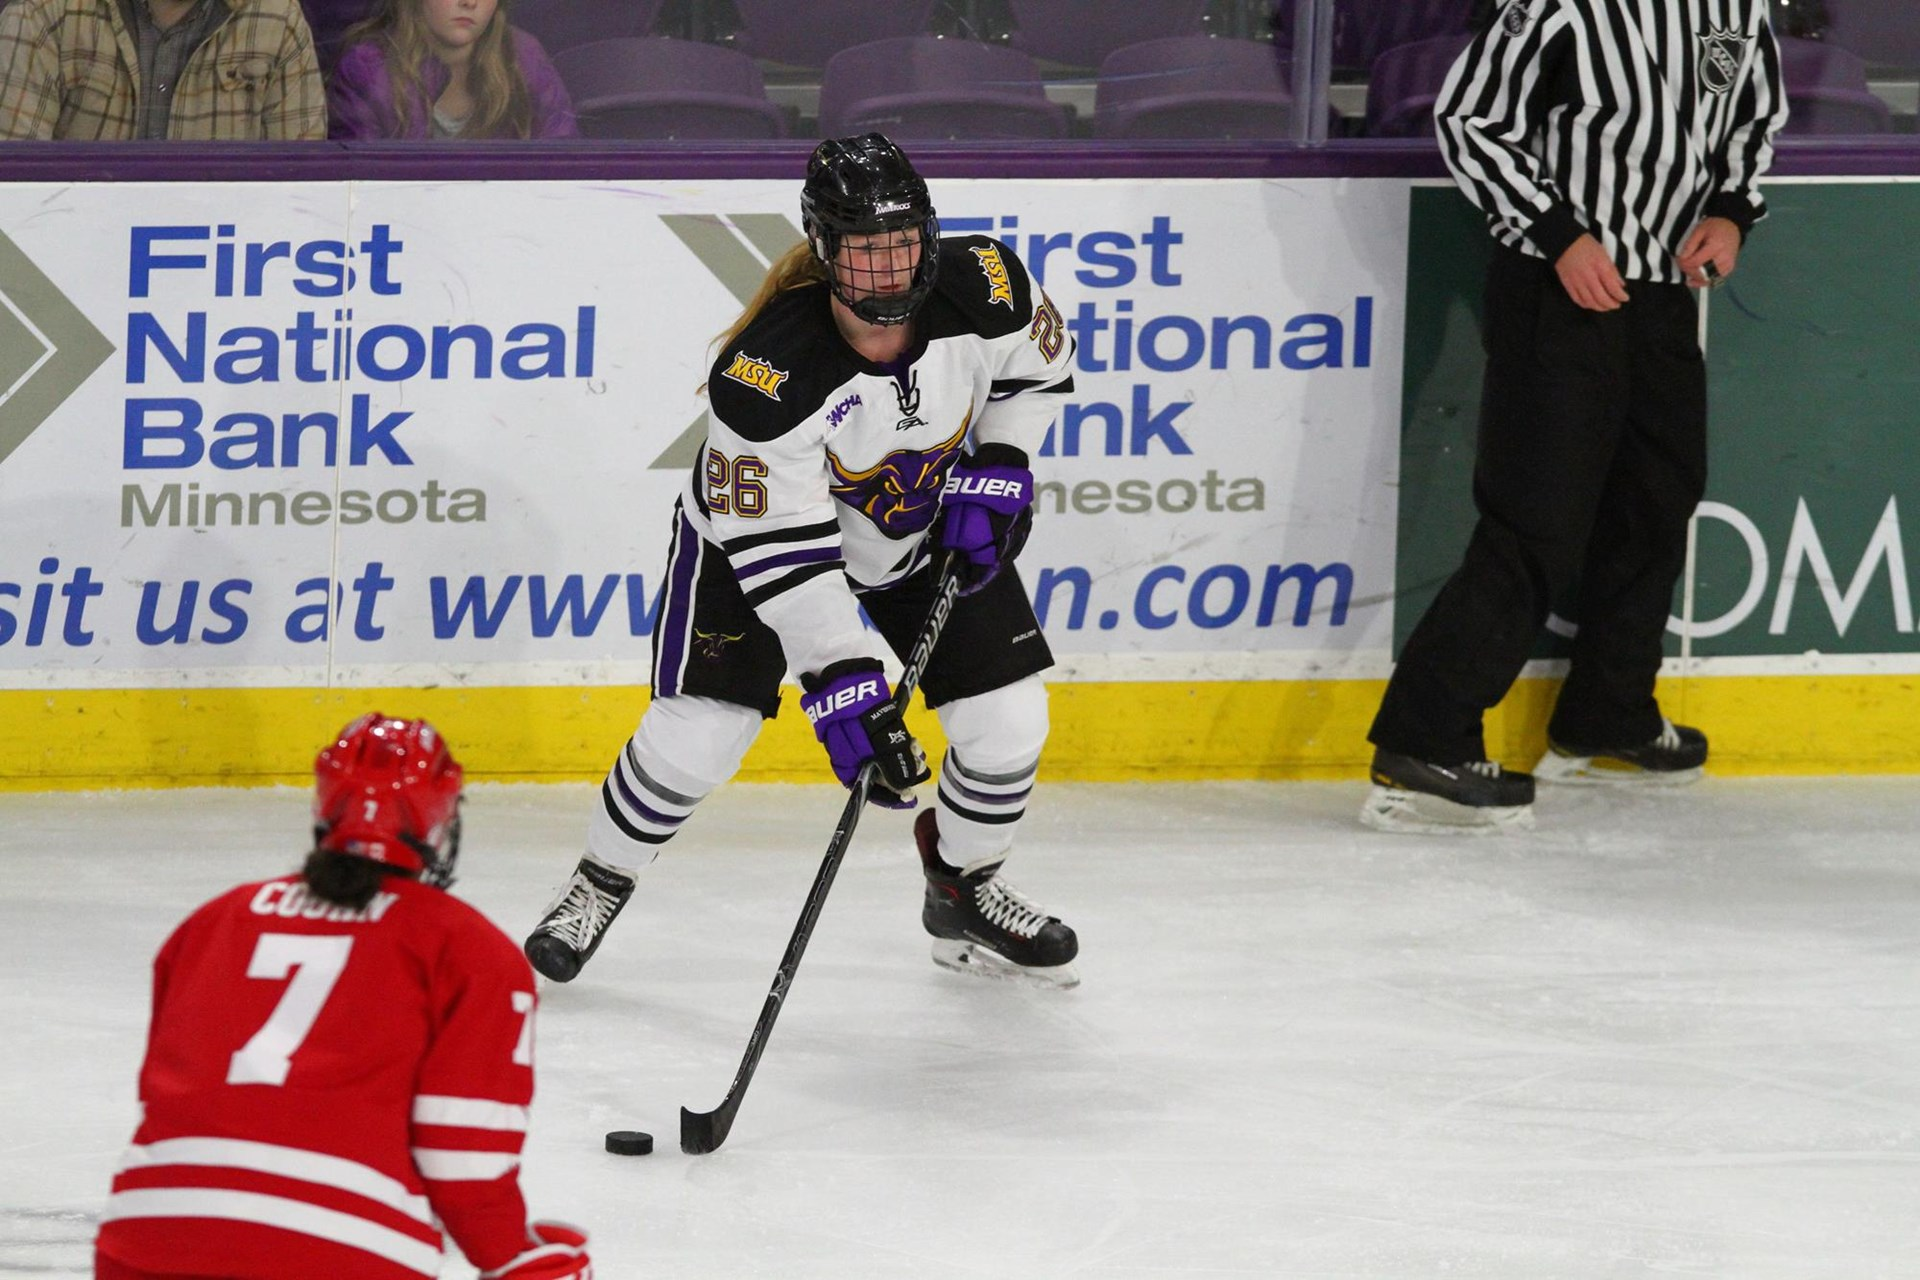 Tristen Truax - Women's Hockey - Minnesota State University